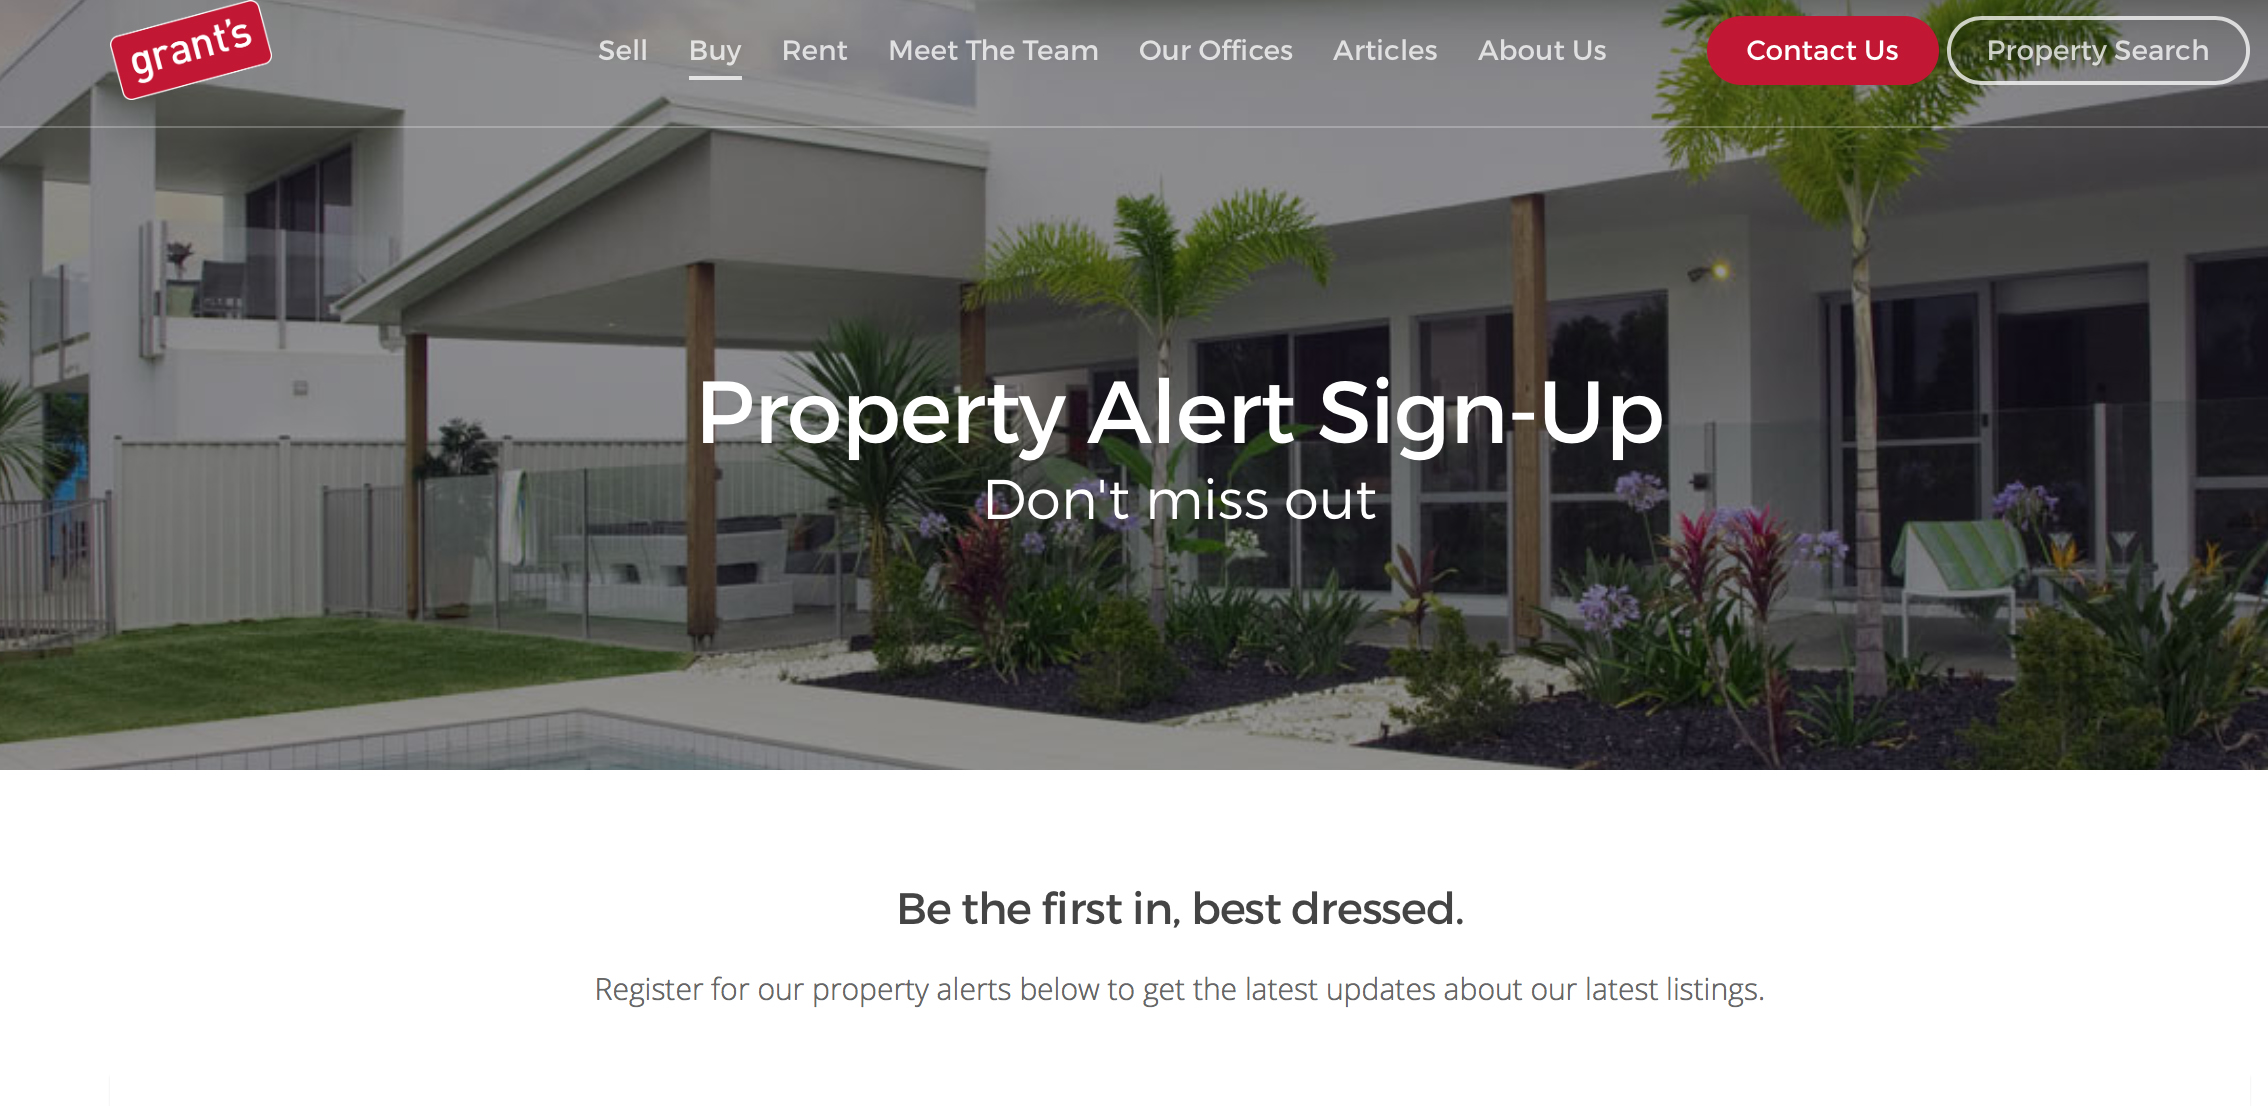 All the latest property listings to your inbox – Grants property alerts